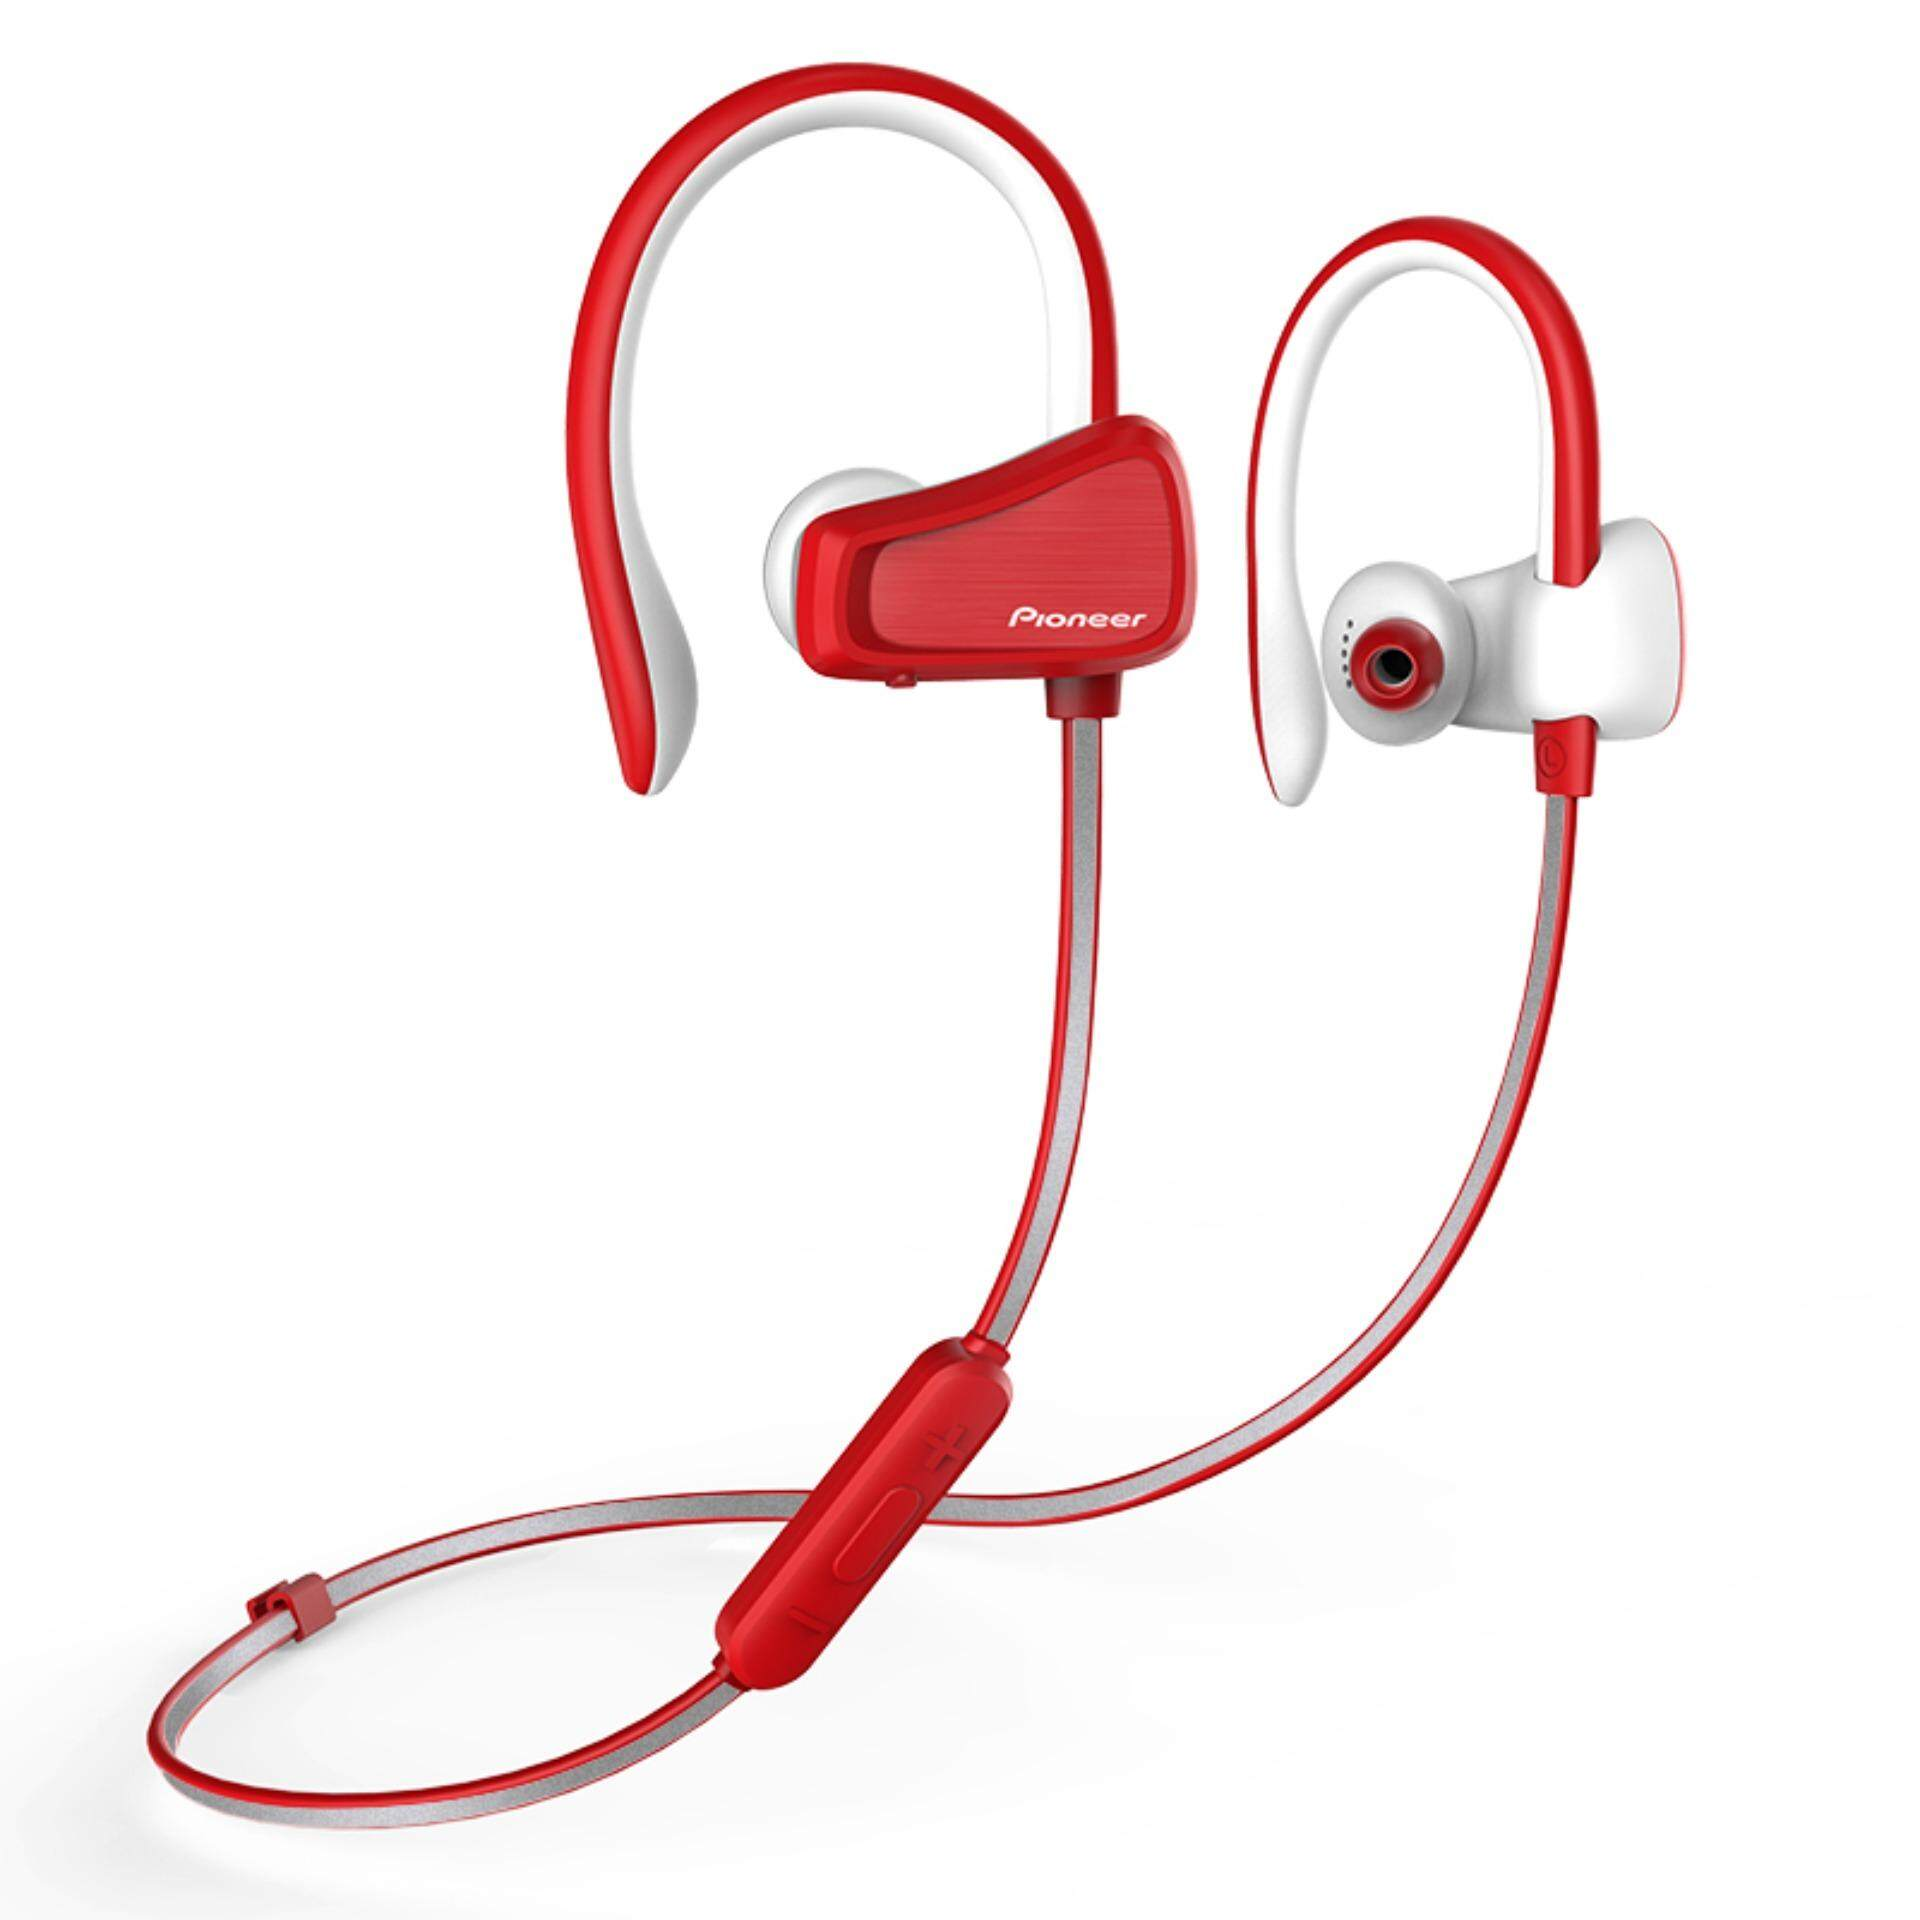 pioneer bluetooth headphones. pioneer relax sports bluetooth headphones with ear hanger(red) | lazada malaysia o